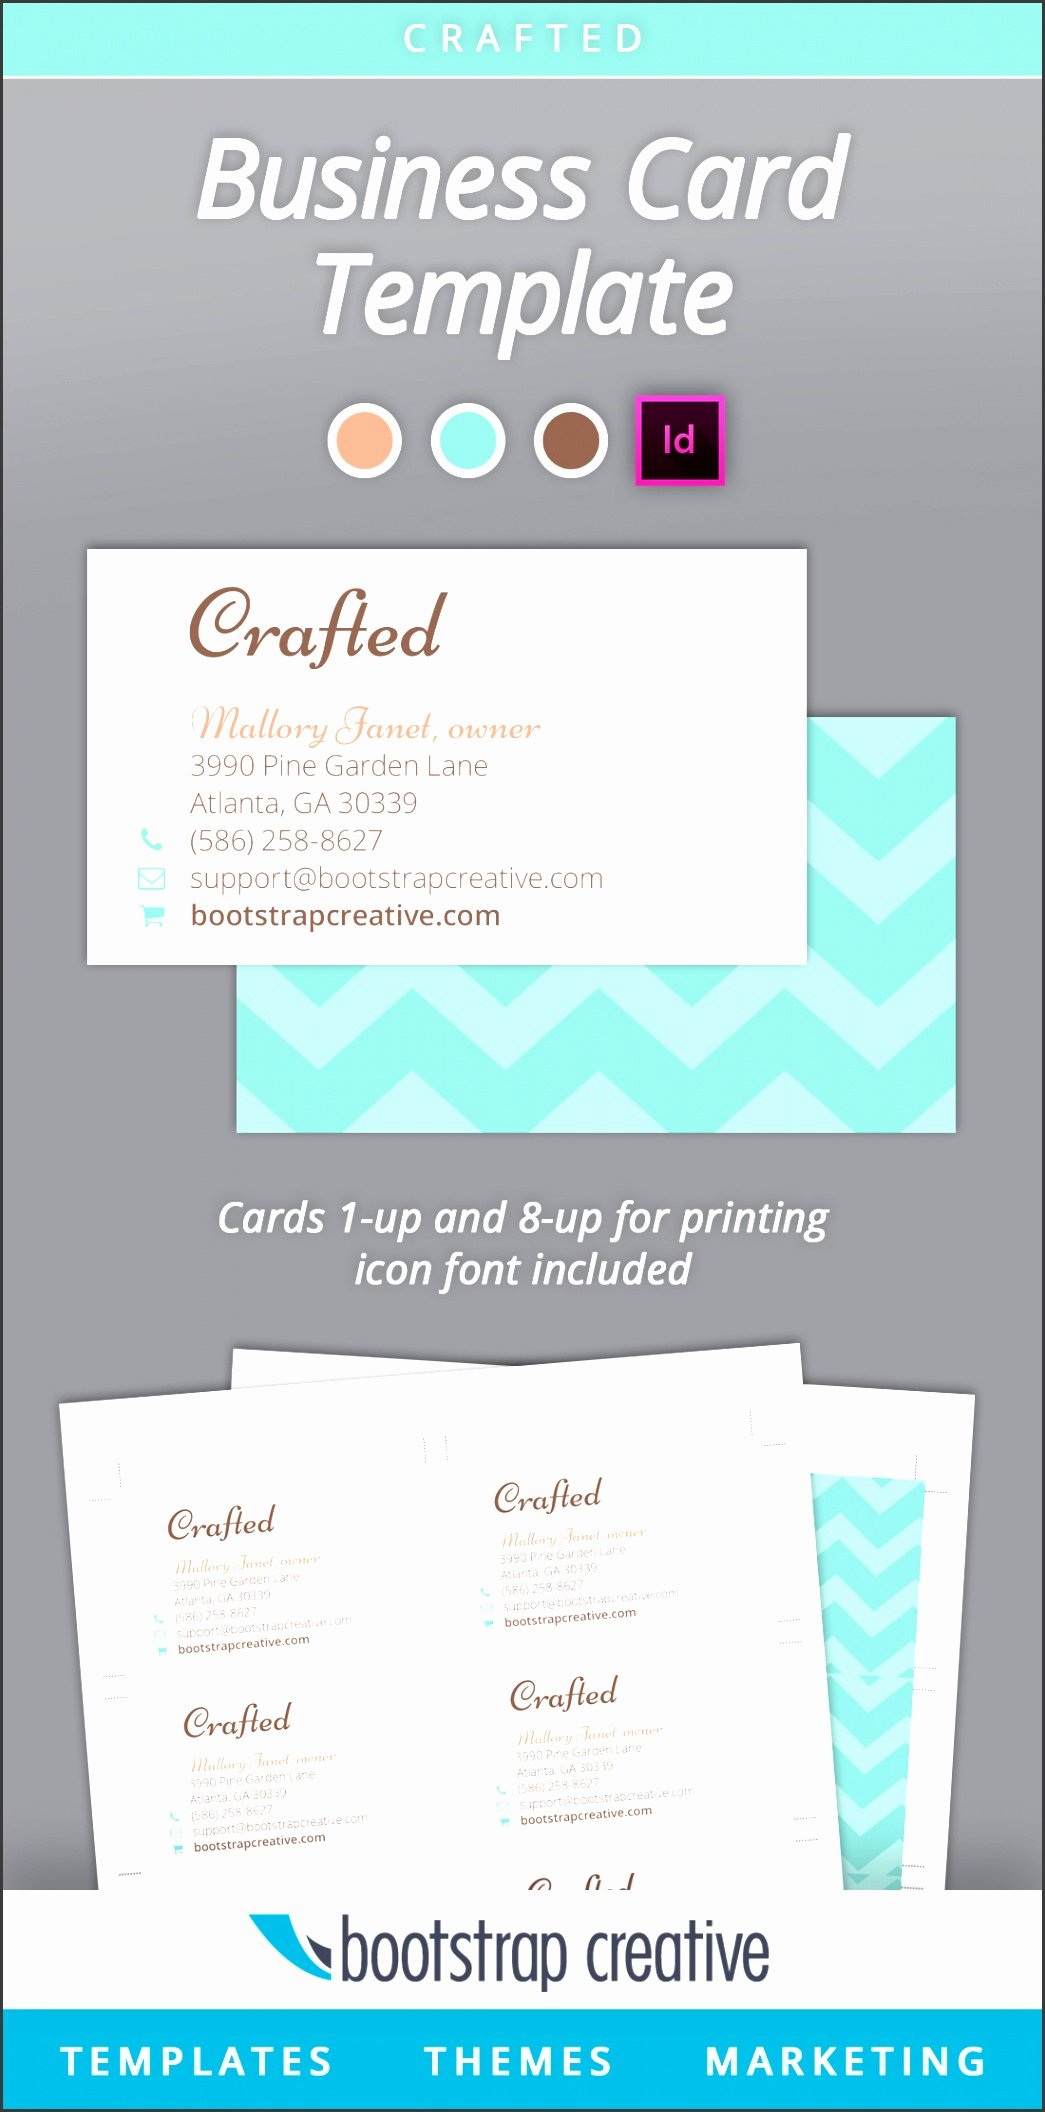 Indesign Business Card Template Free Best Of 5 Adobe Indesign Business Card Template Sampletemplatess